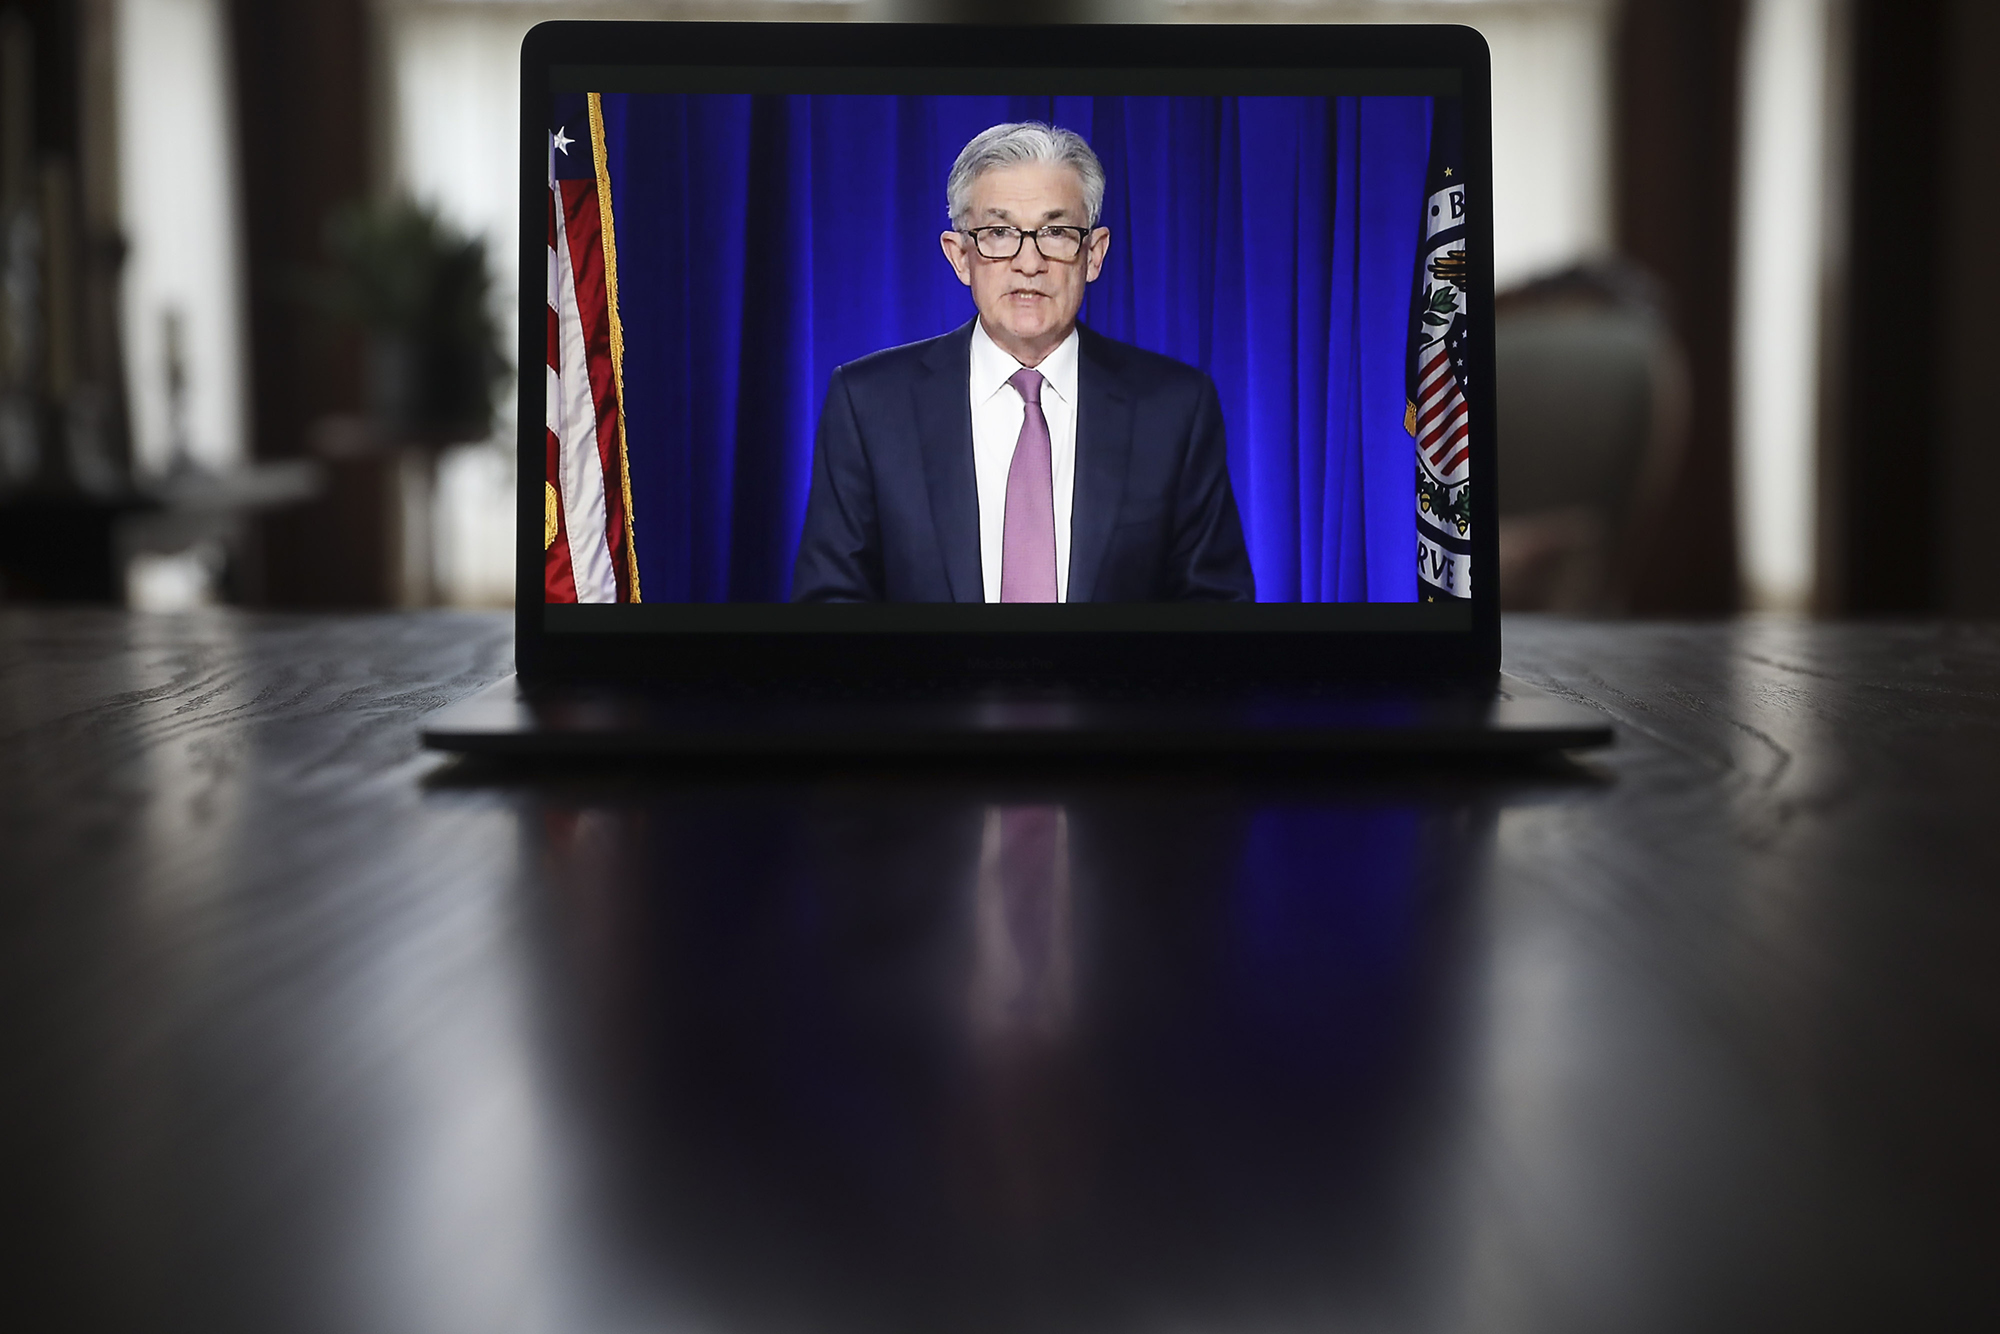 Cyberattacks are the number-one threat to the global financial system, Fed chair says